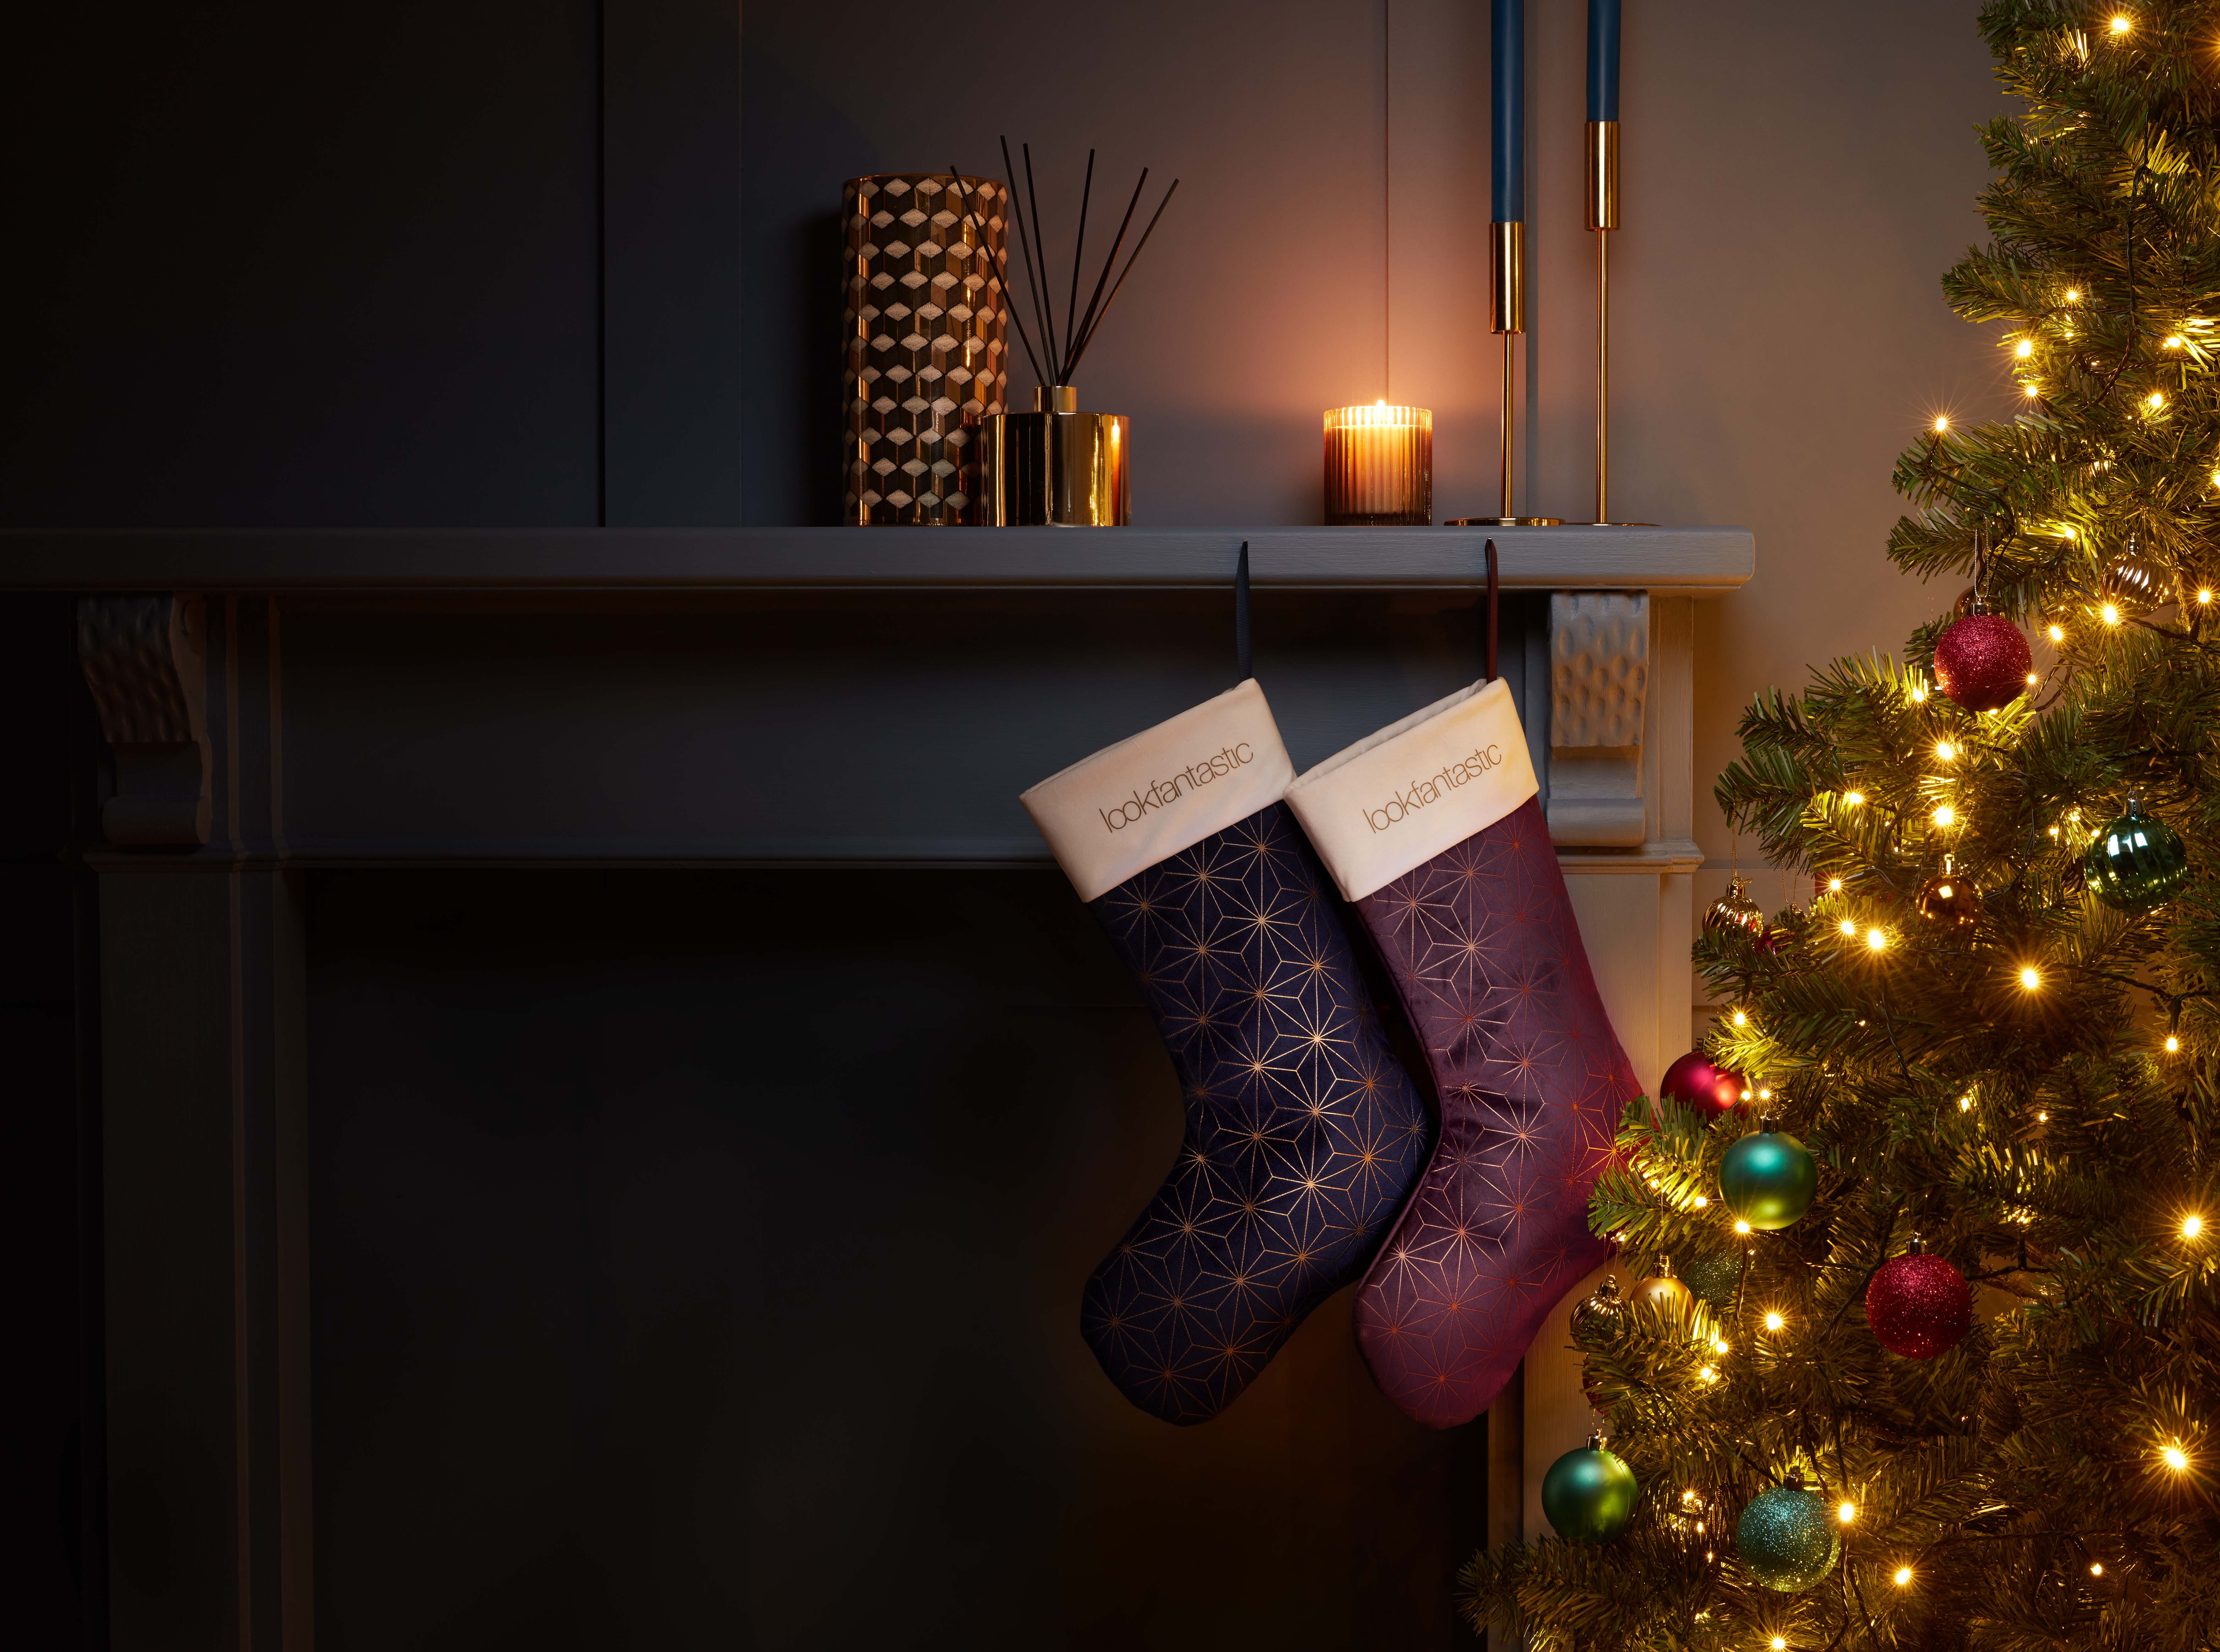 Christmas shopping made simple, the best gifts for everyone on your list